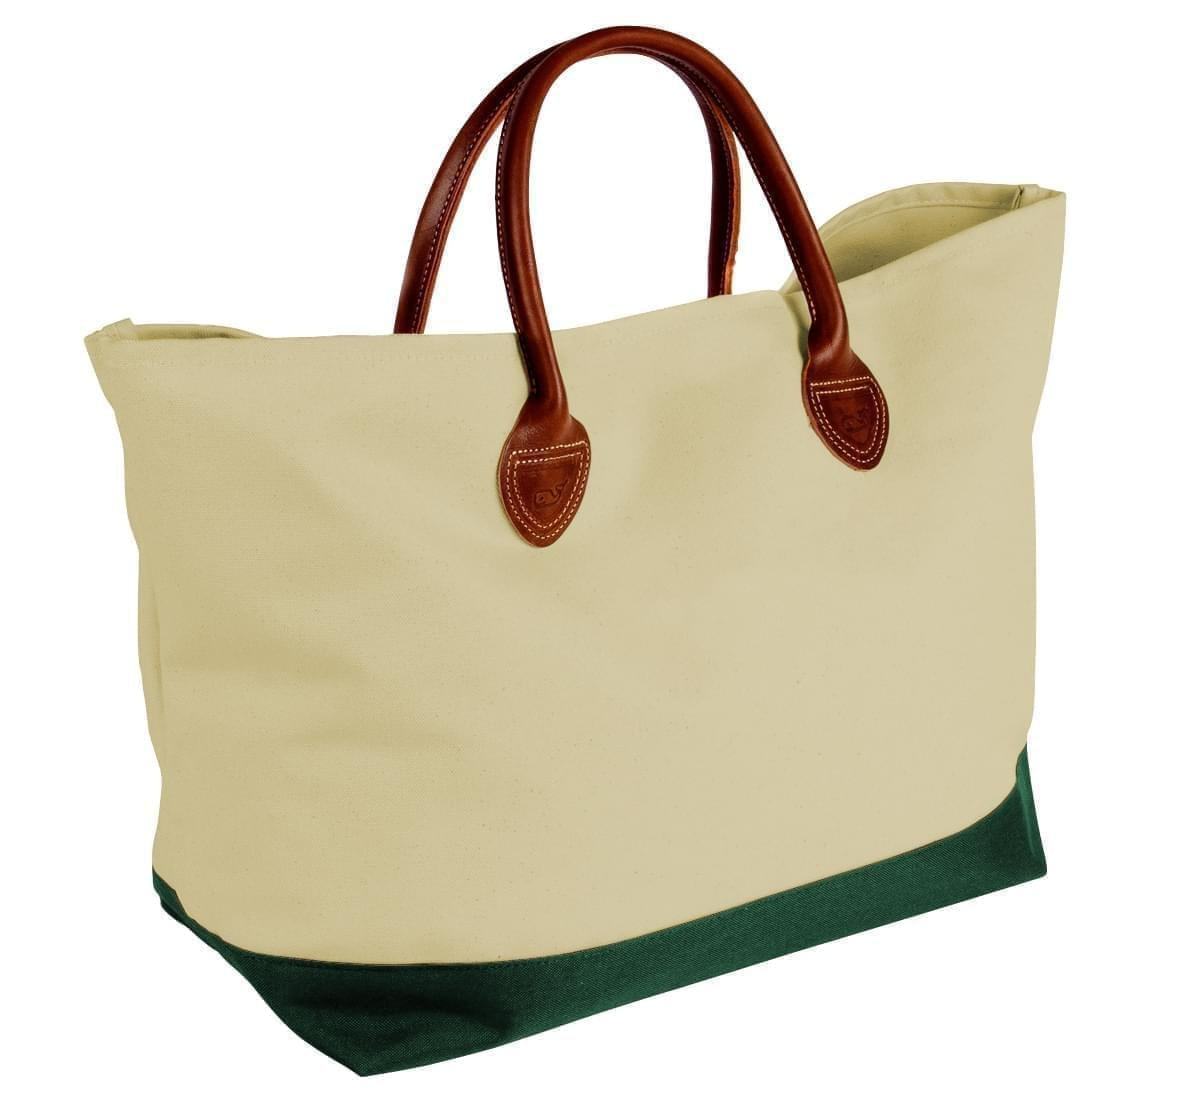 USA Made Canvas Leather Handle Totes, Natural-Hunter Green, 10899-VK9